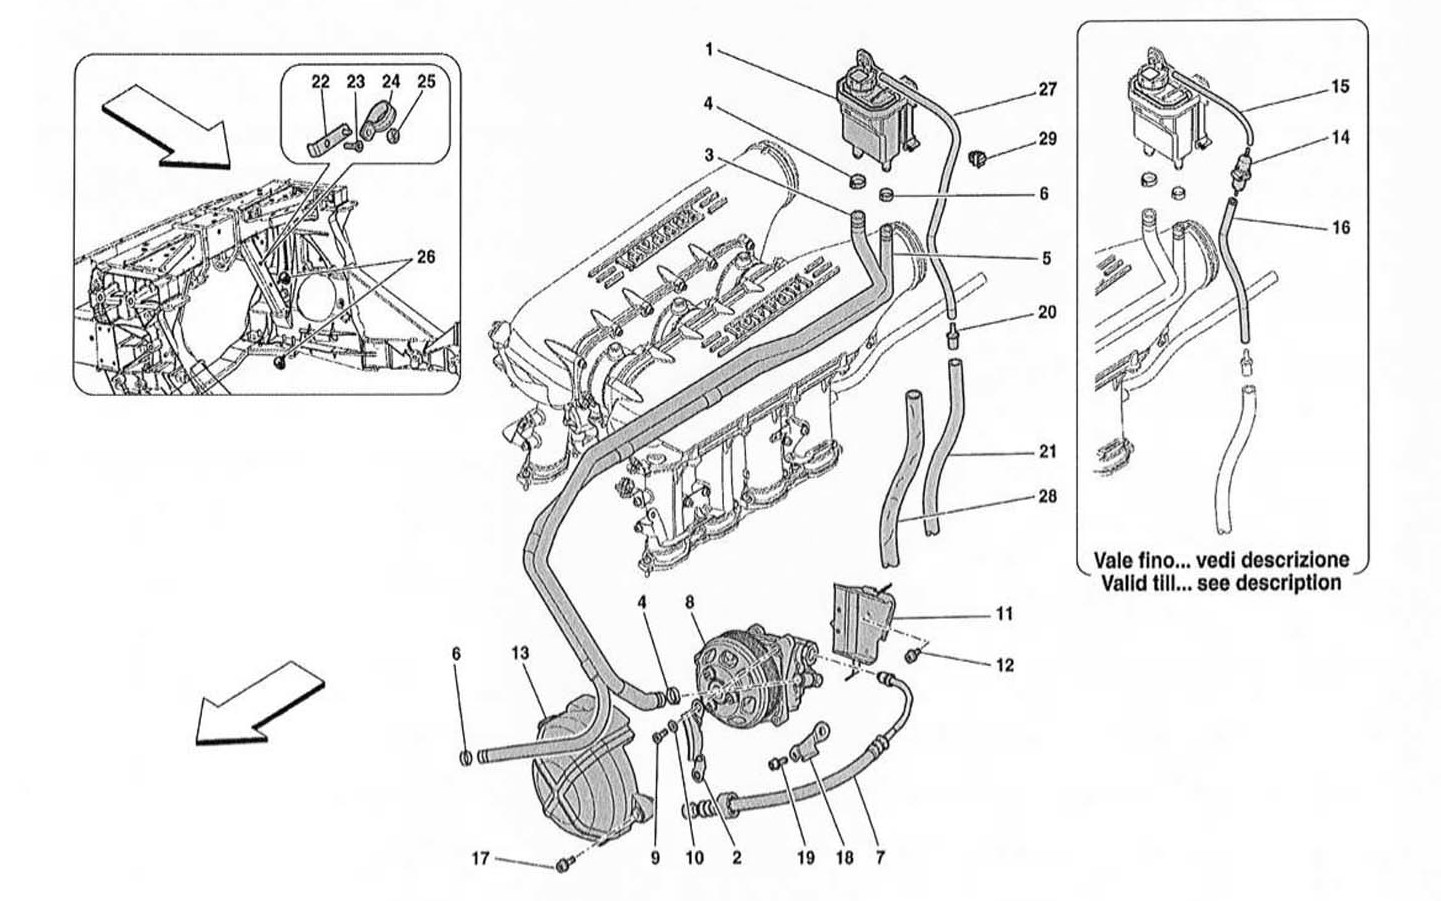 HYDRAULIC STEERING PUMP AND TANK